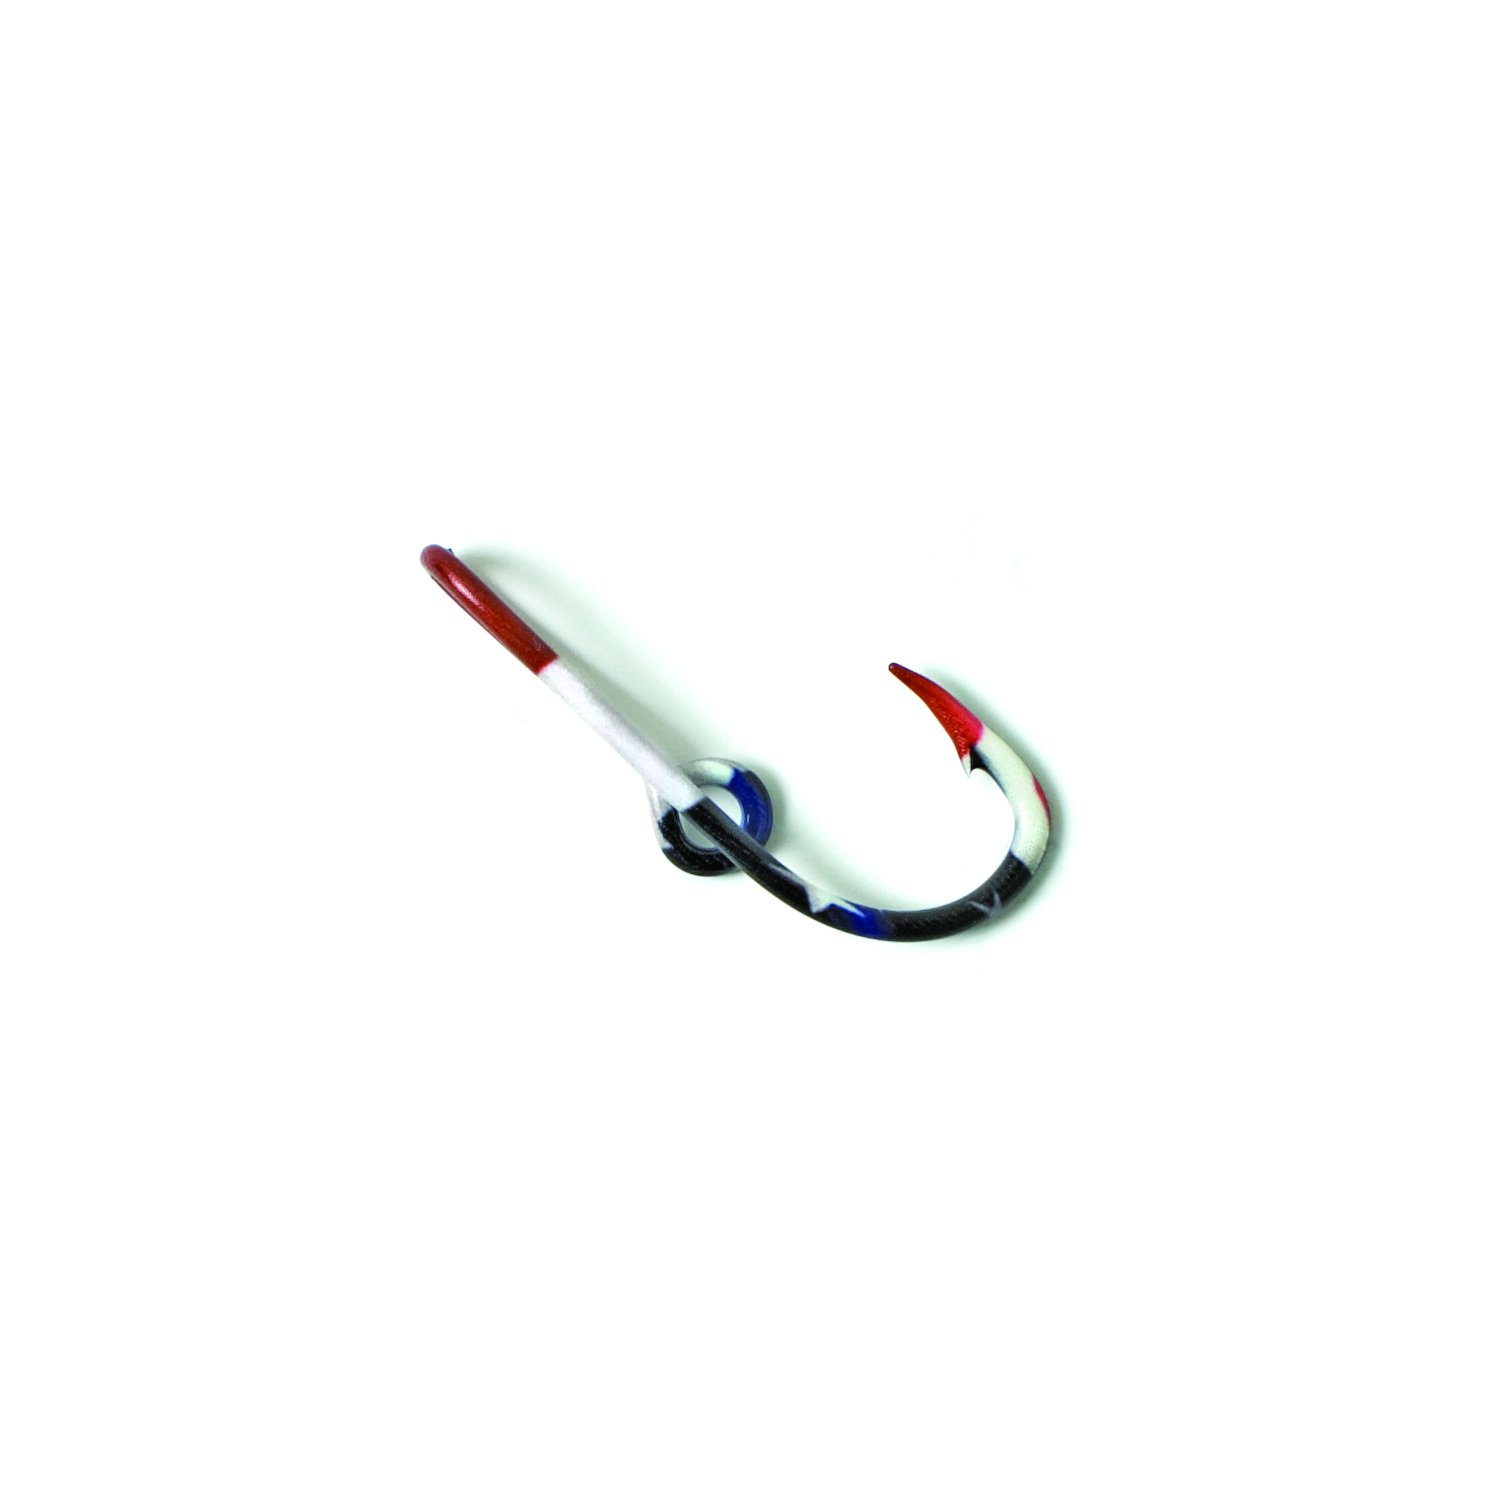 Amazon.com : Eagle Claw 155AH-FLAG Hat/Tie Clasp Graphix Edition ...